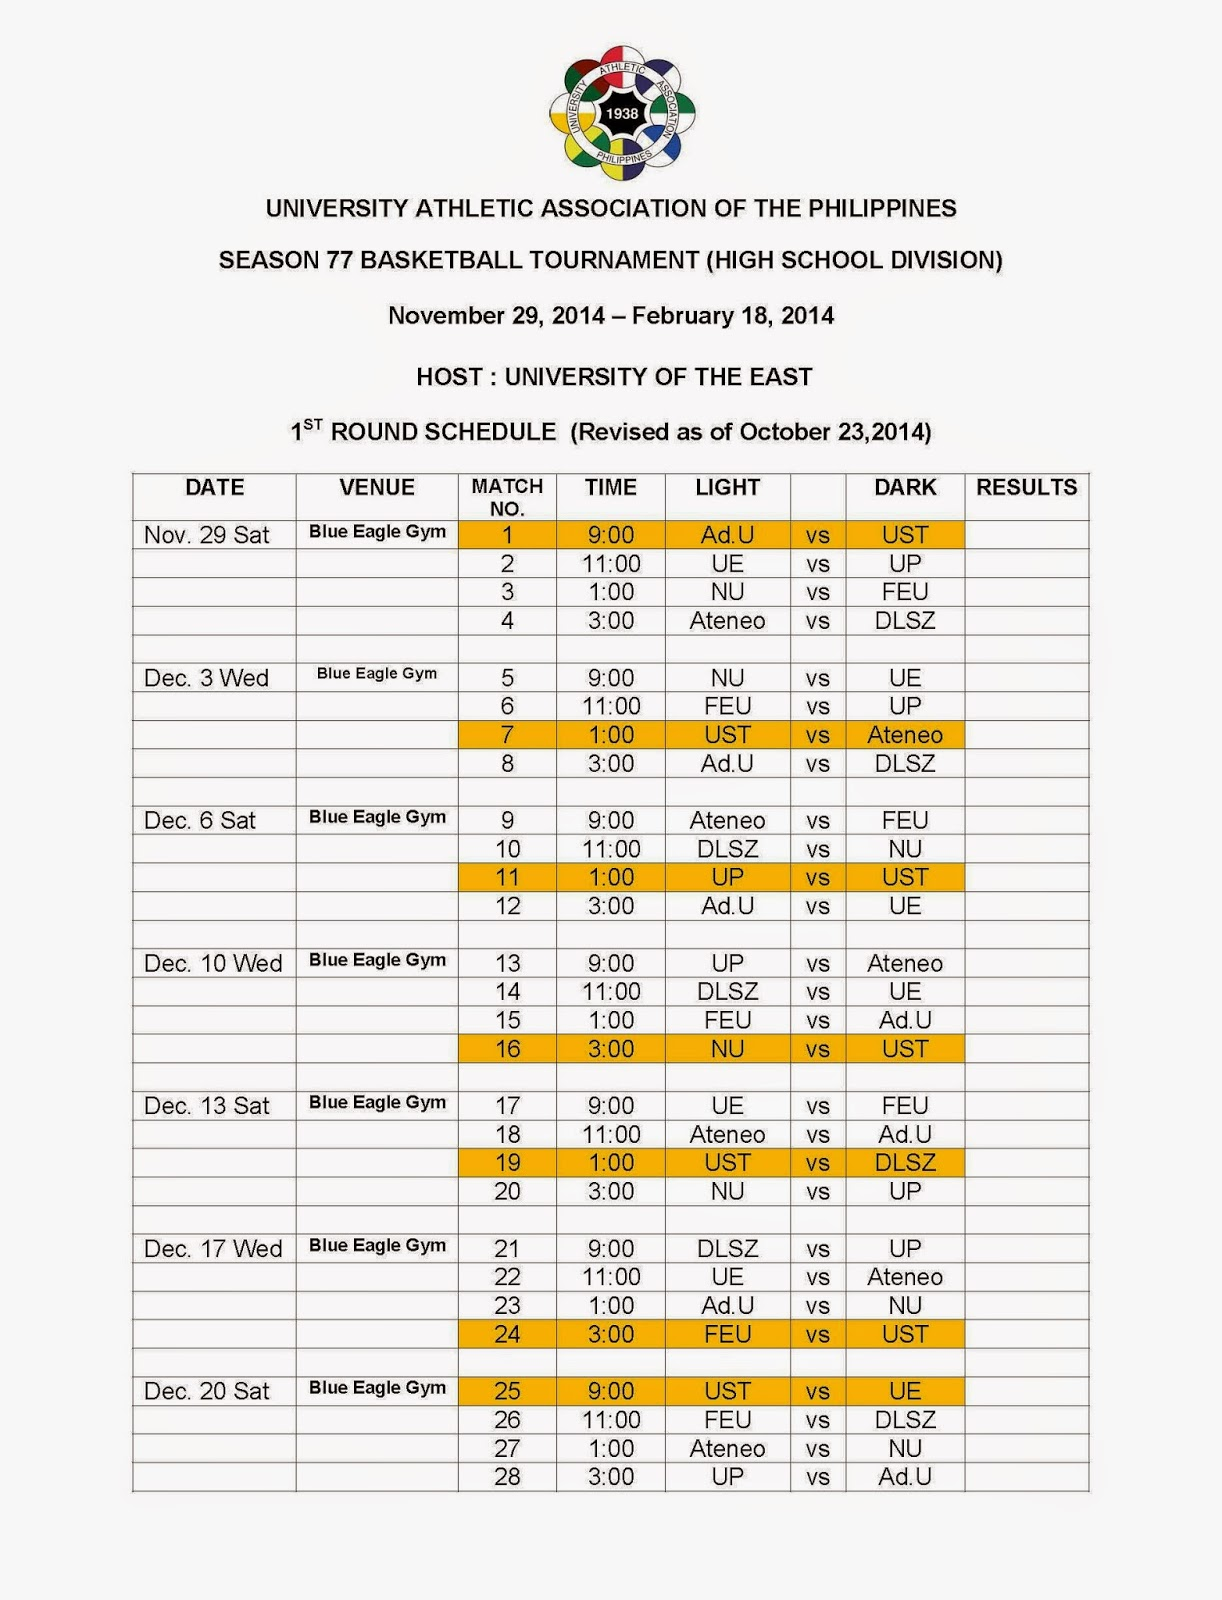 uaap season 22 basketball tournament high school division first round of schedule